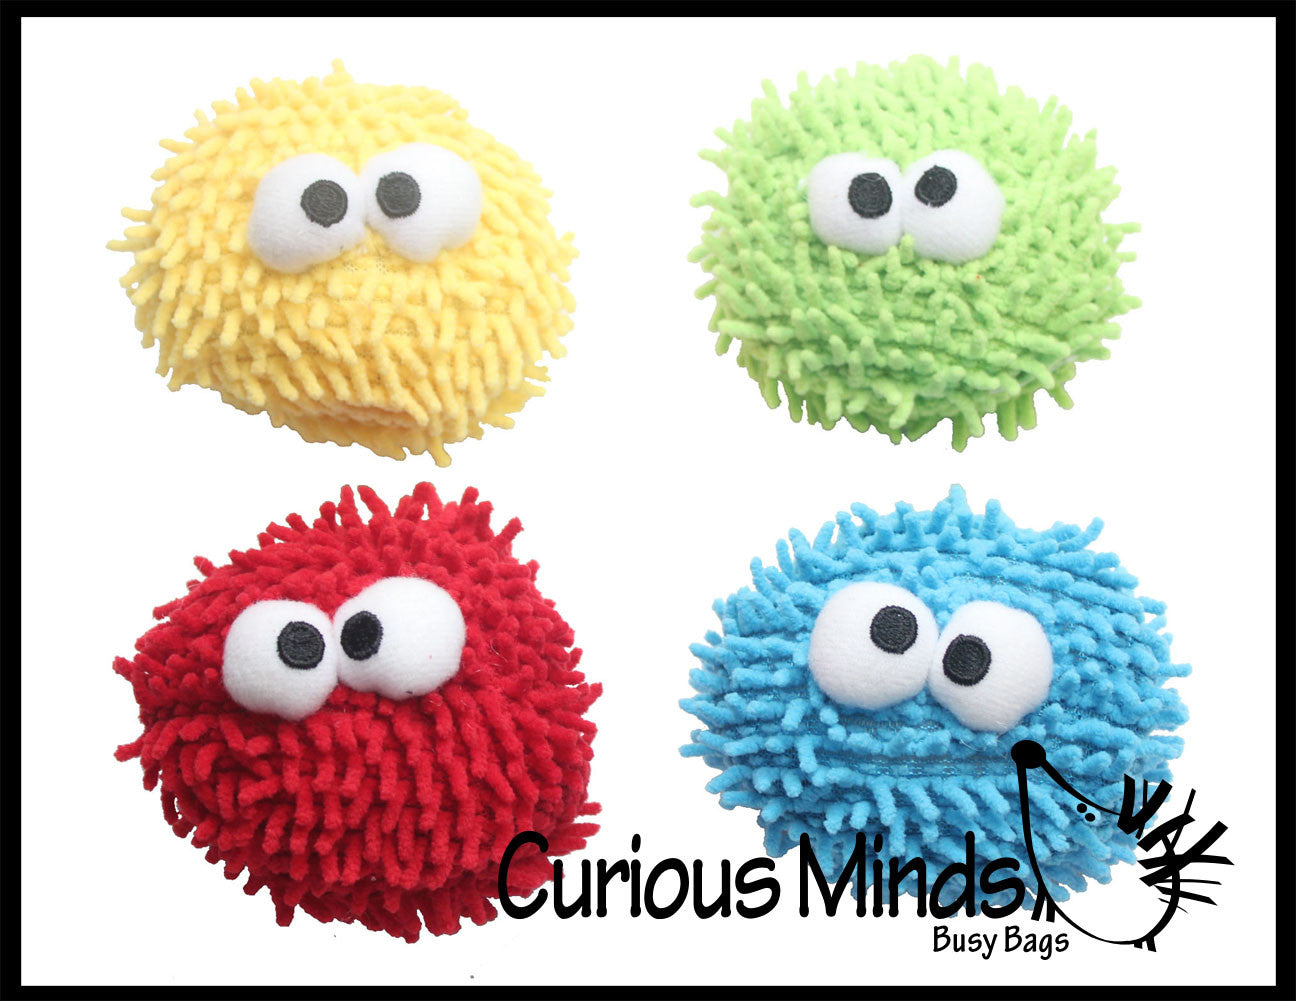 Hairy Microfiber Cute Ball - Dry Erase Eraser - Screen Cleaner - Sensory Fidget Toy